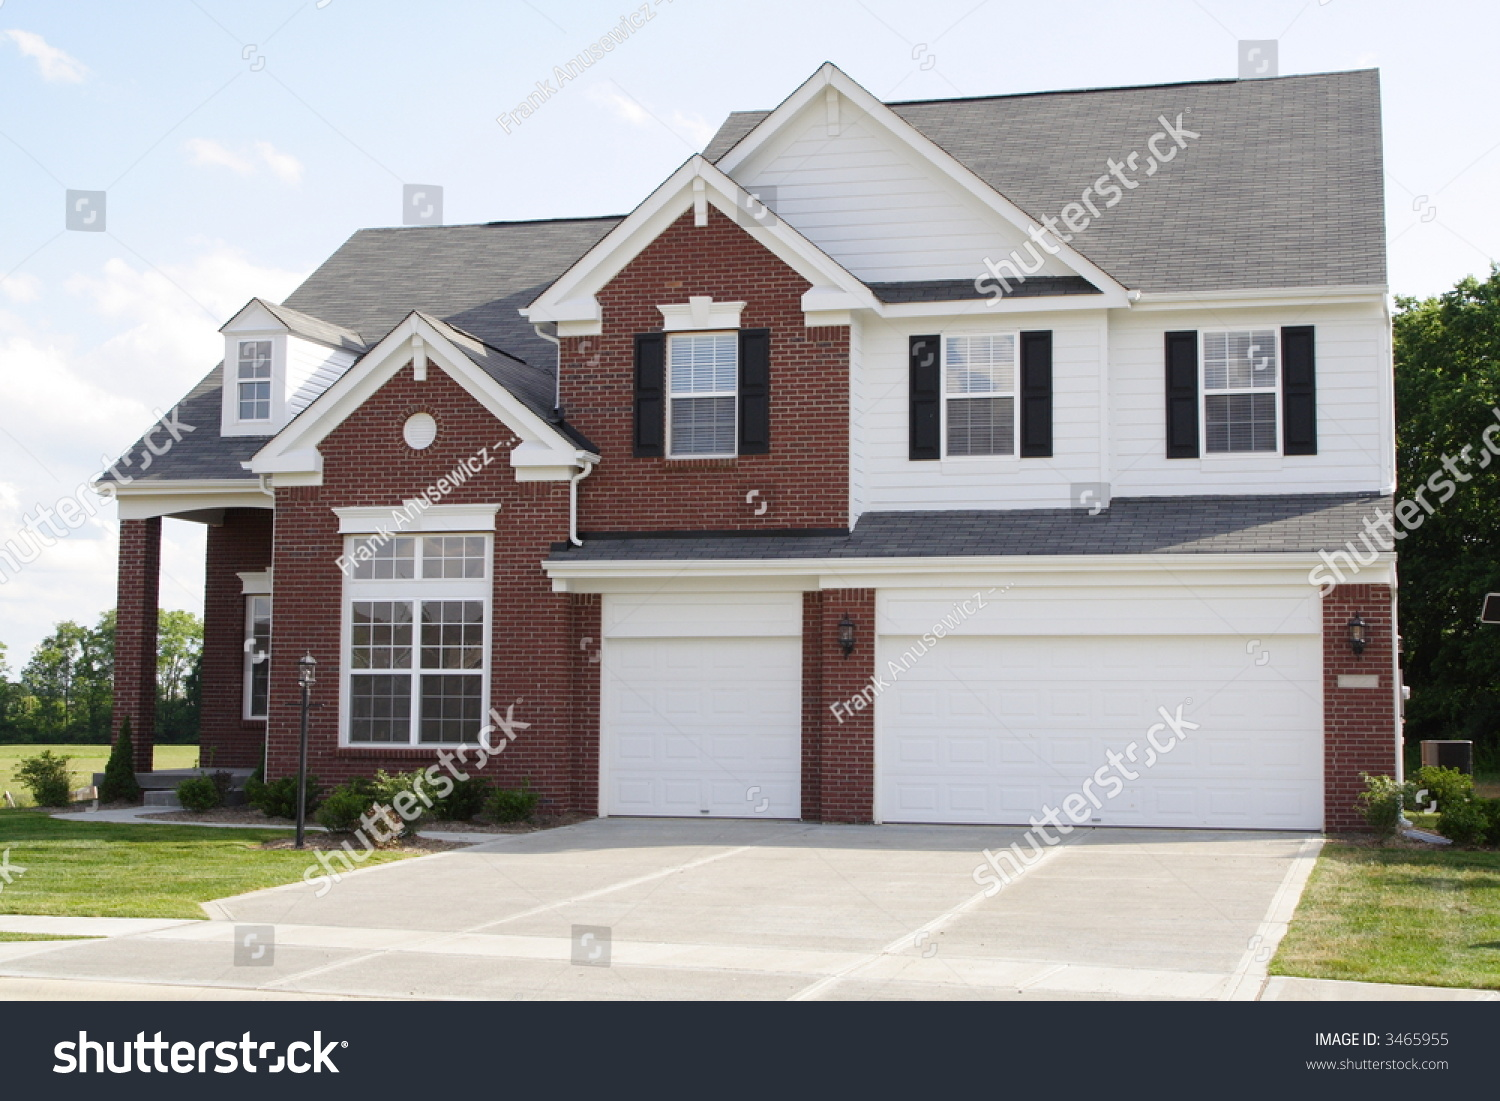 New 2 Story Brick Home 3 Stock Photo 3465955 Shutterstock